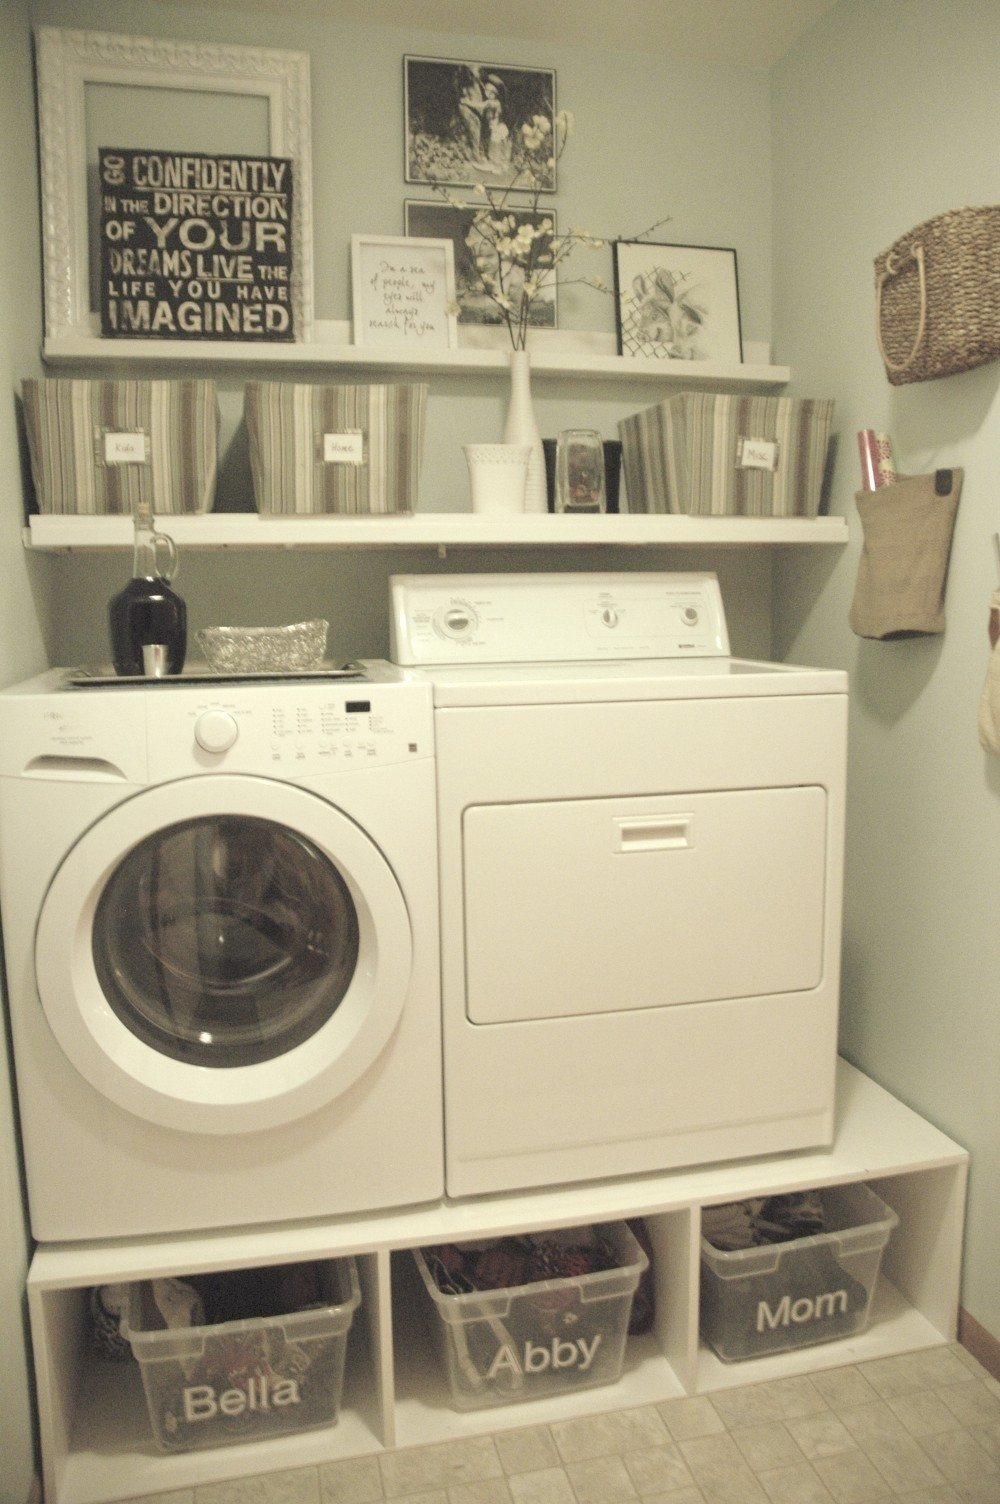 10 Perfect Laundry Room Ideas Small Space decorating small laundry room ideas all in home decor ideas 2